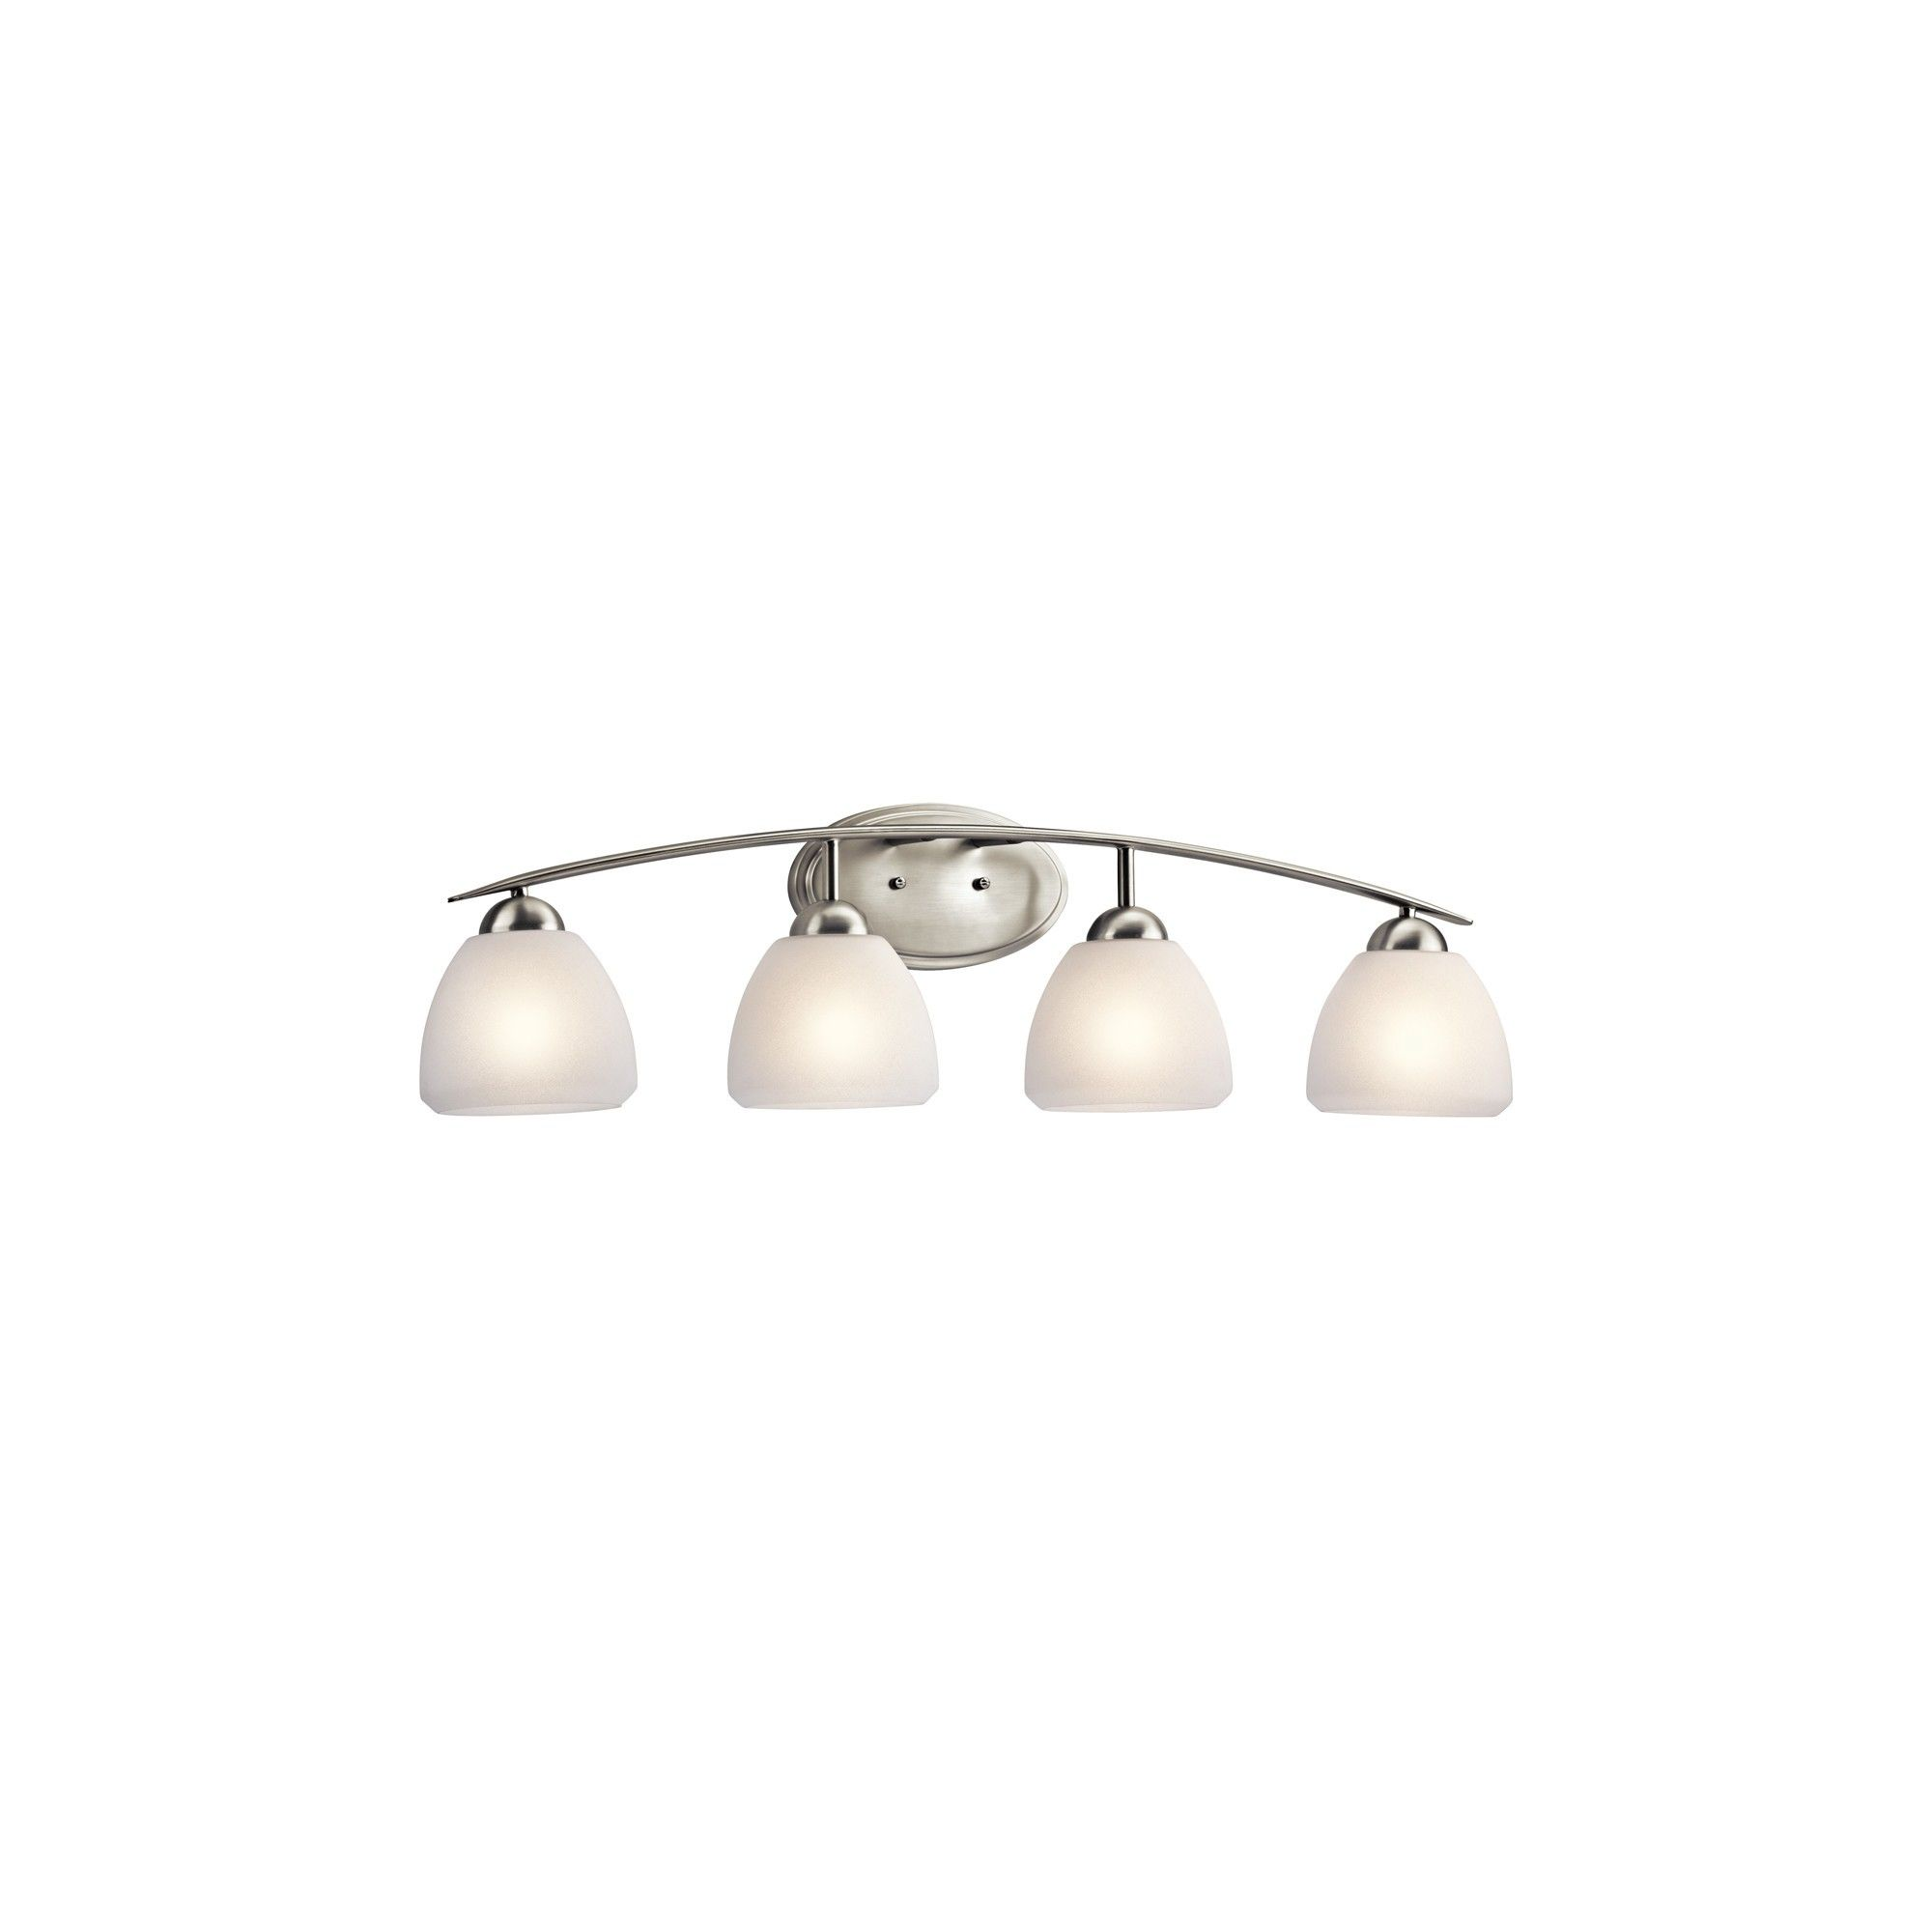 """Photo of Kichler 45120 Calleigh 4 Light 35 """"Wide Vanity Light bathroom tap with frosted glass shades – brushed nickel"""